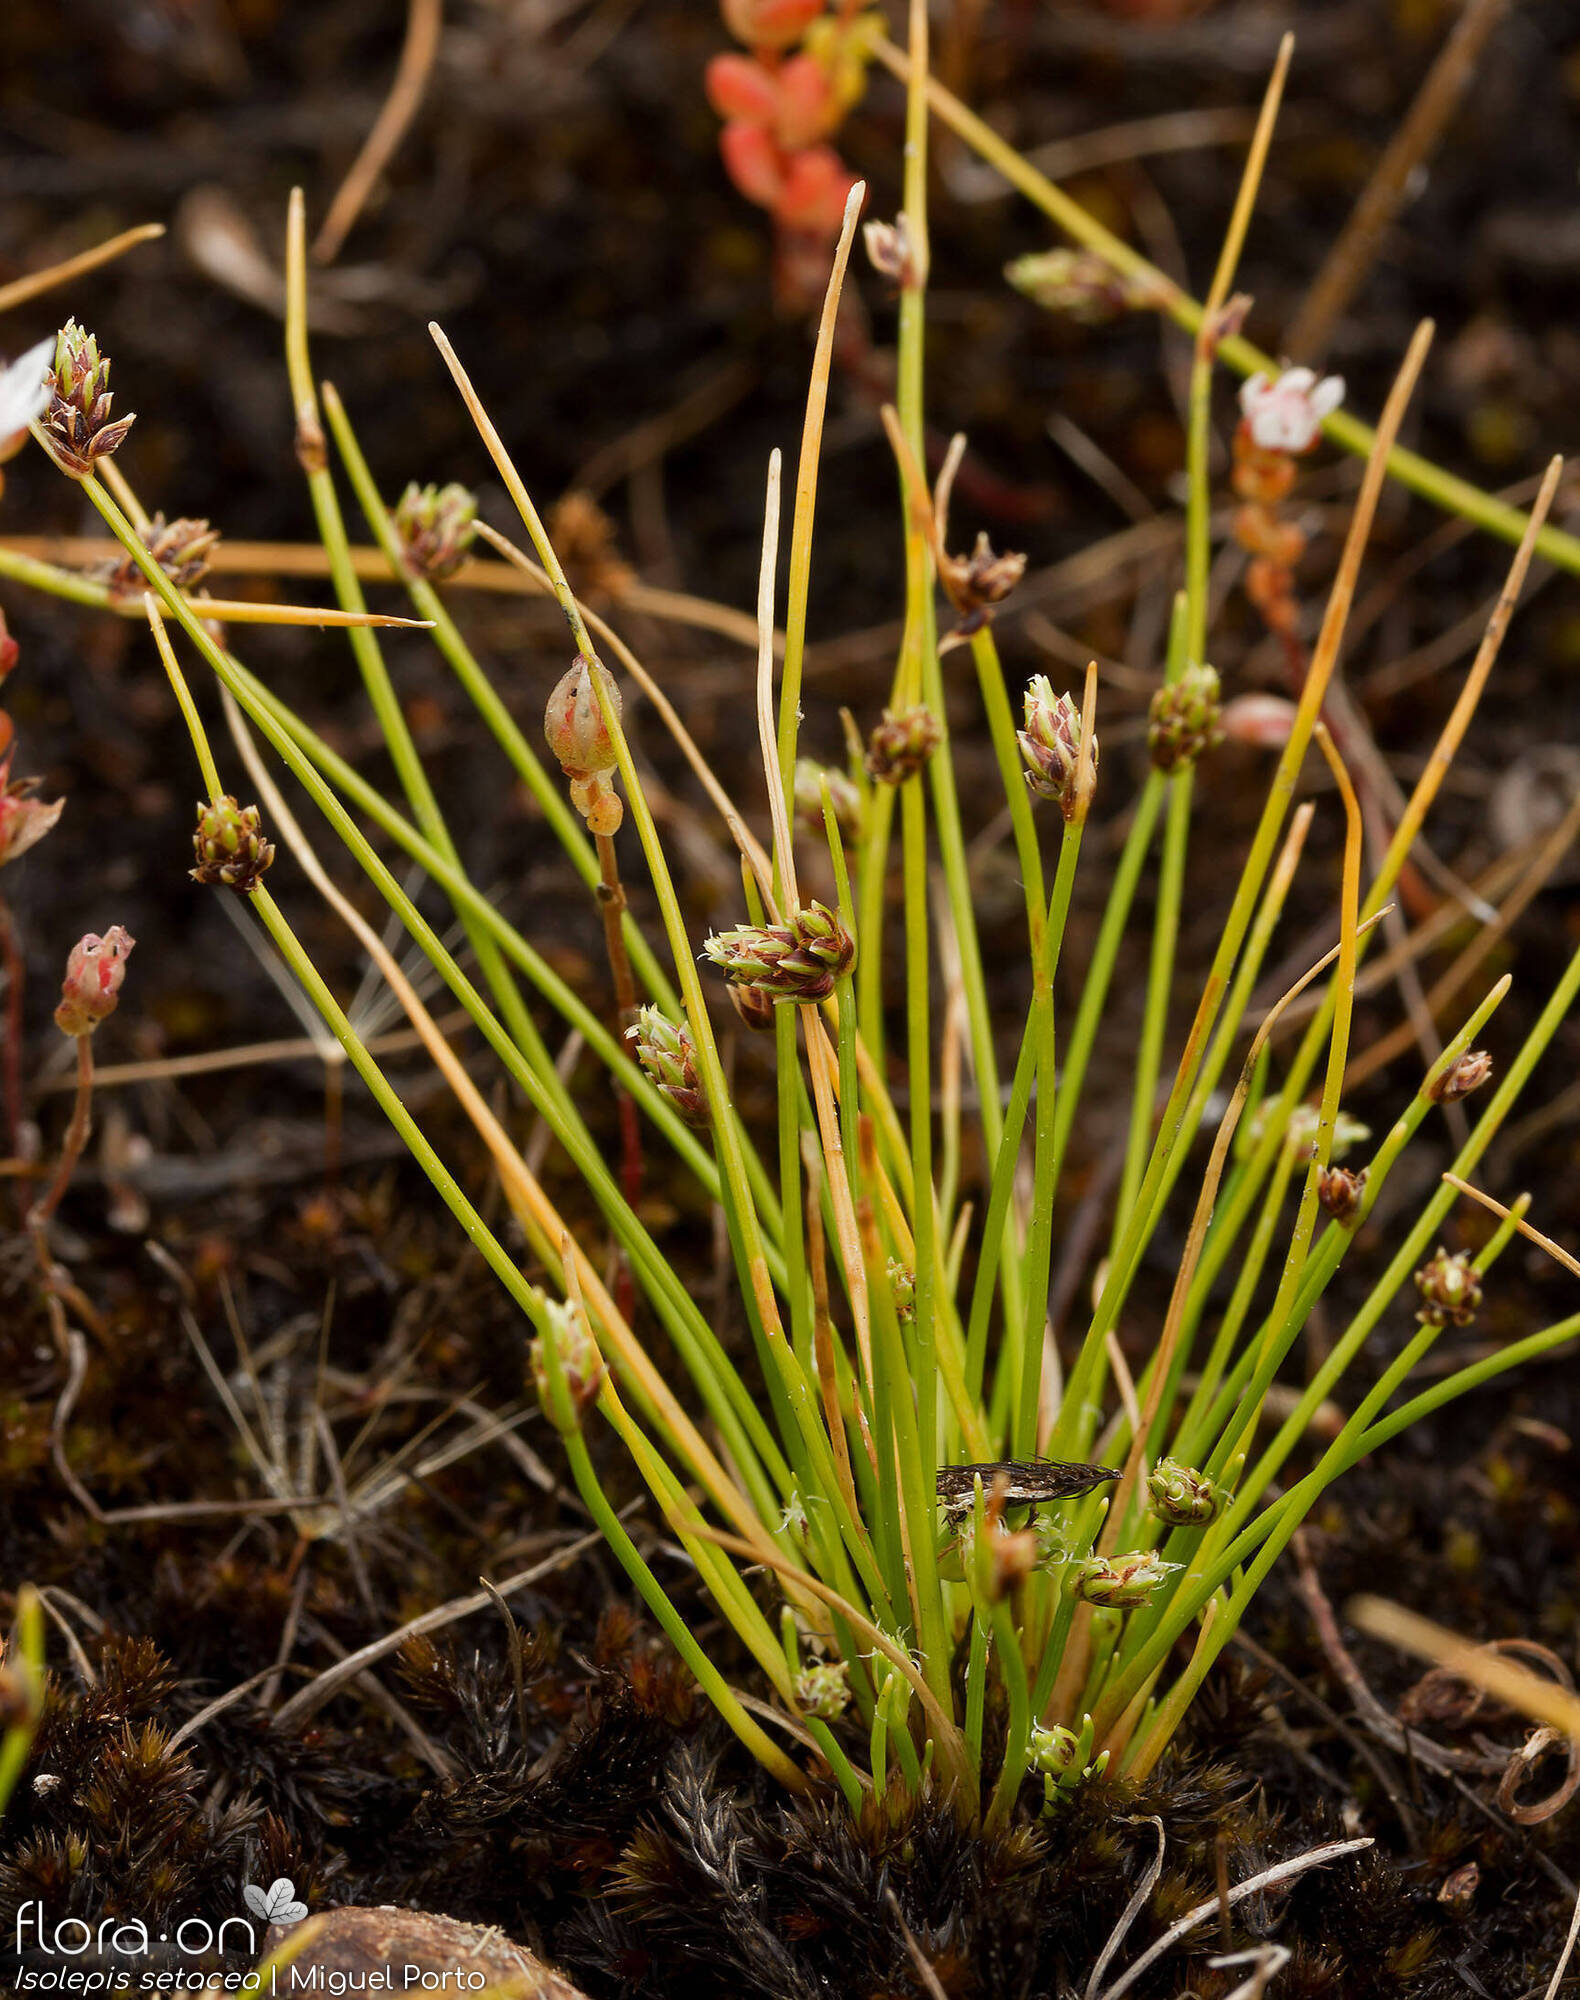 Isolepis setacea - Hábito | Miguel Porto; CC BY-NC 4.0